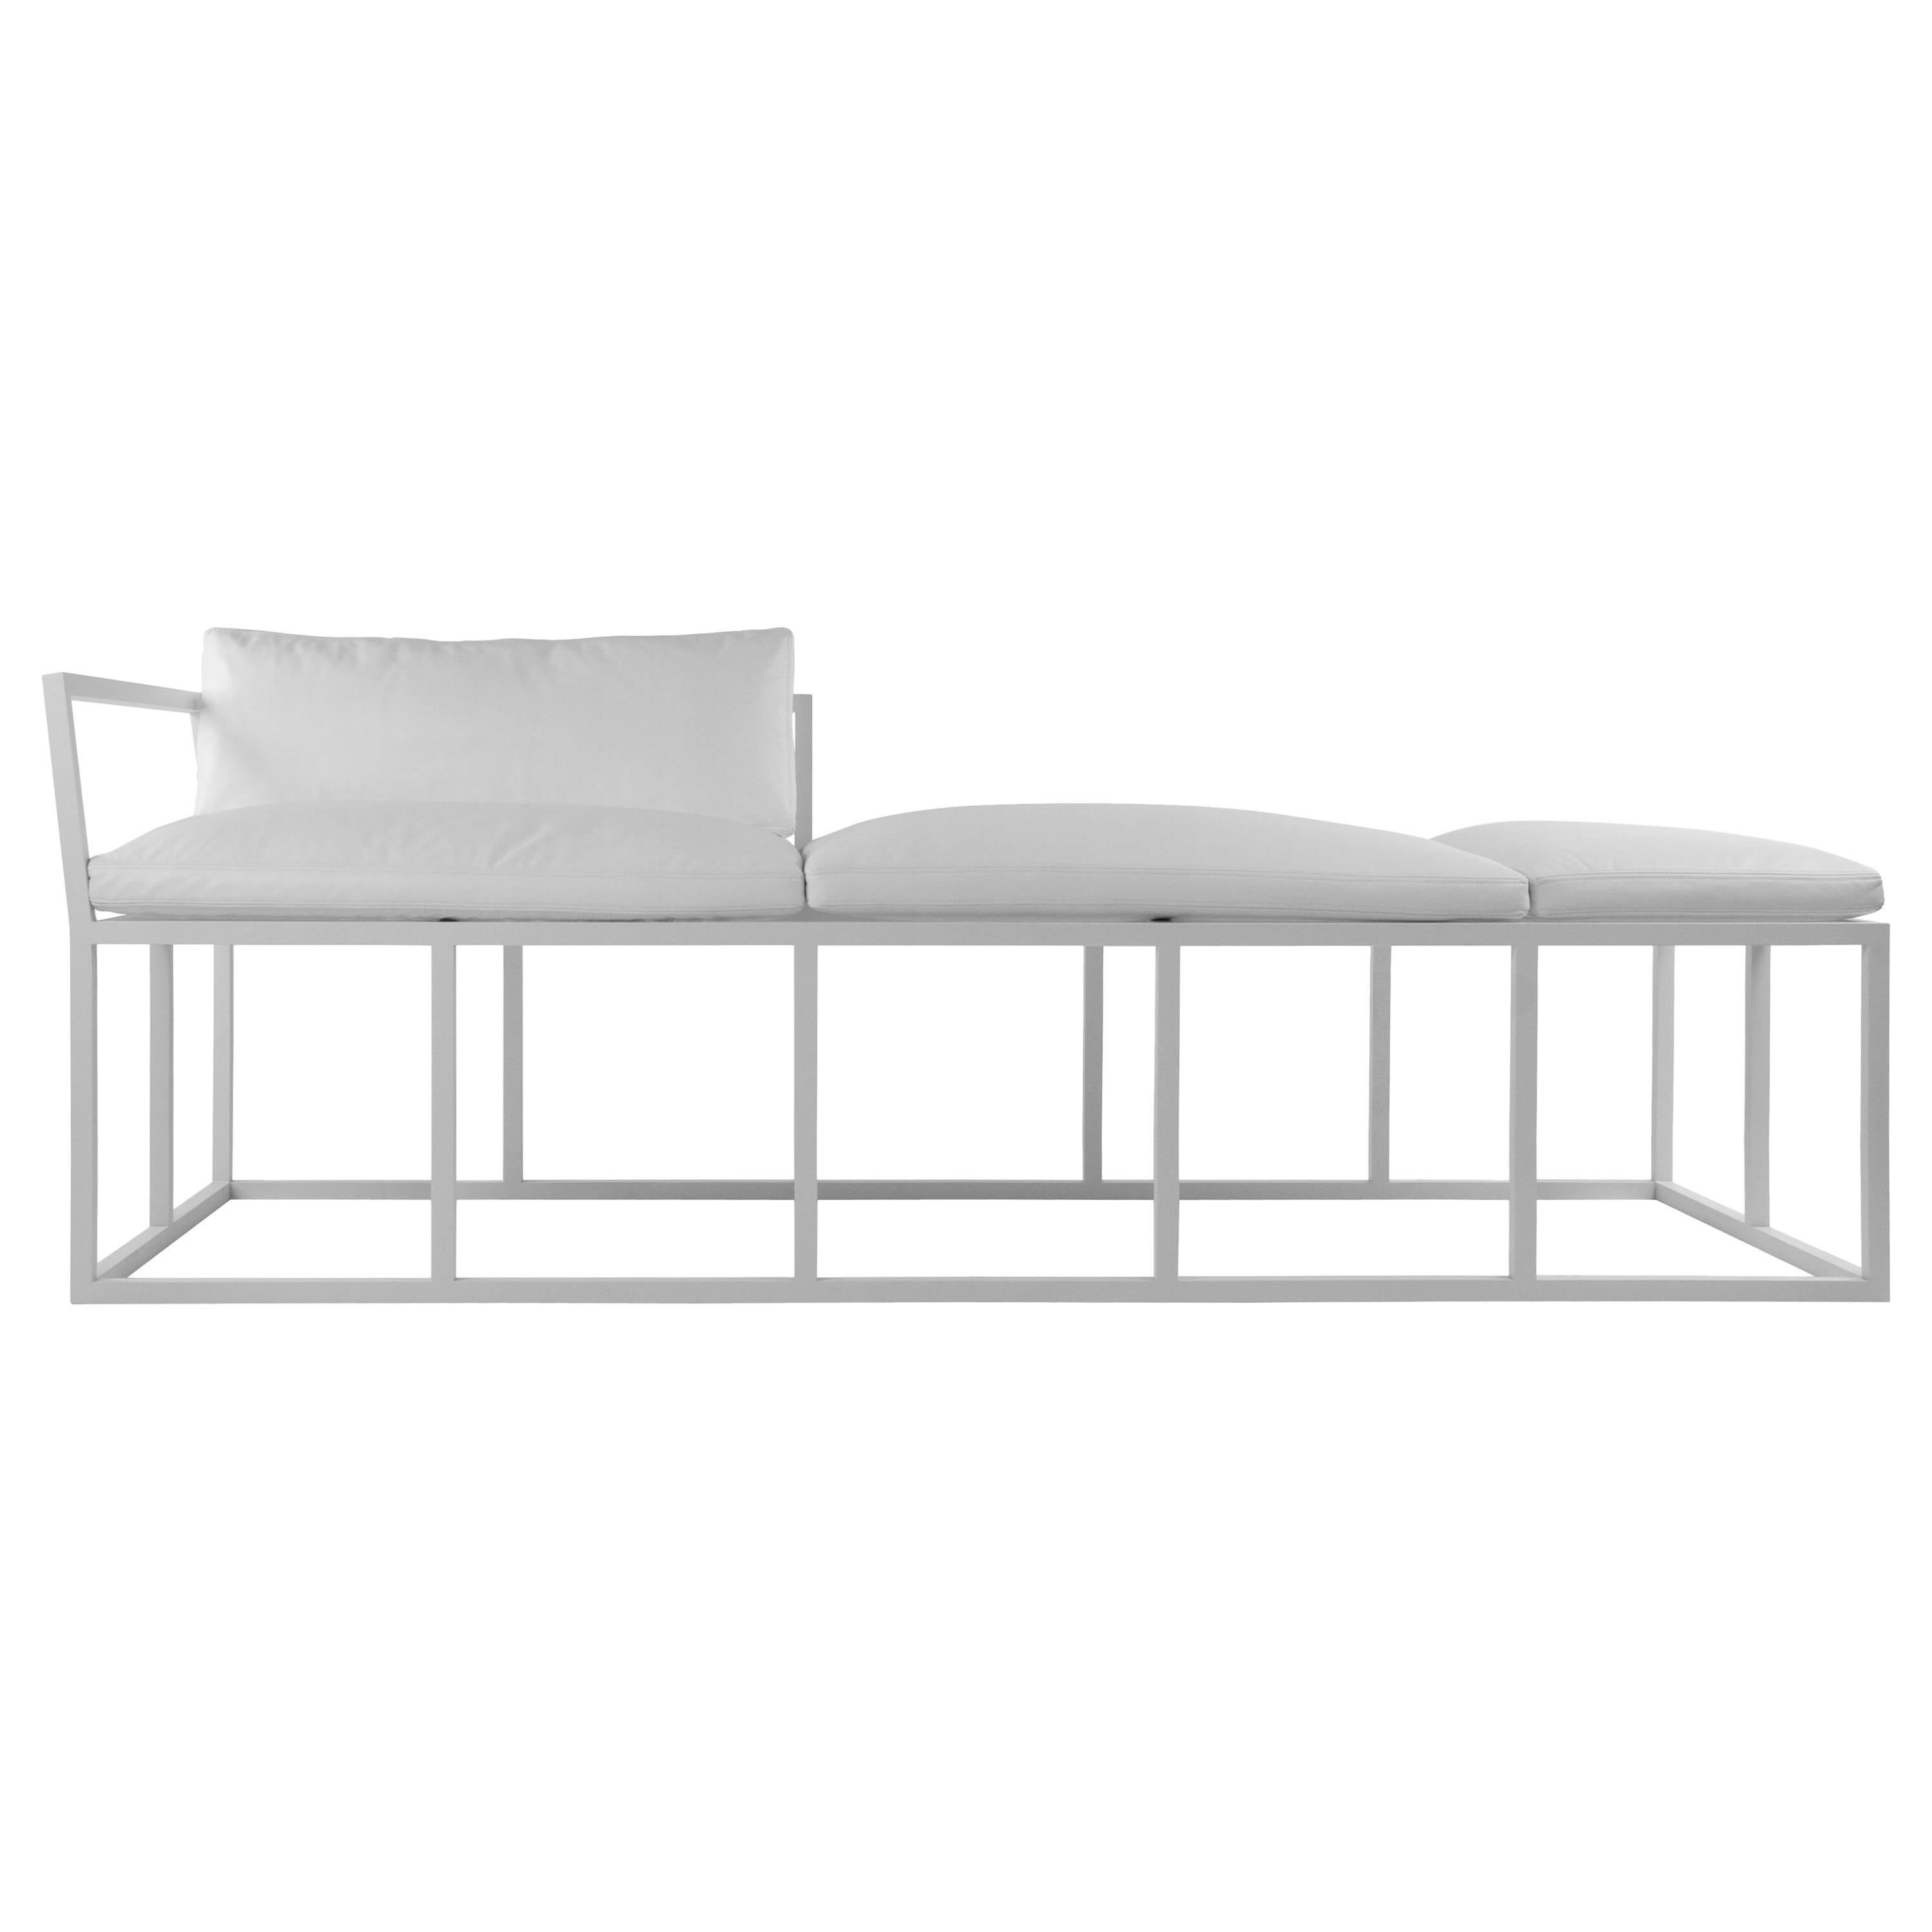 Sol daybed in coated aluminum and spinneybeck leather by jonathan nesci for sale at 1stdibs